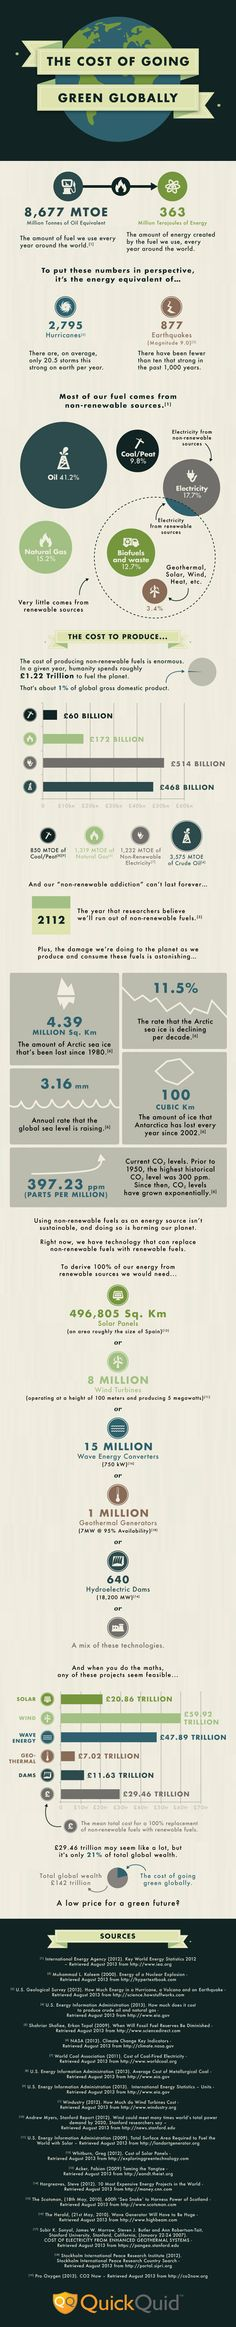 The cost of growing green globally